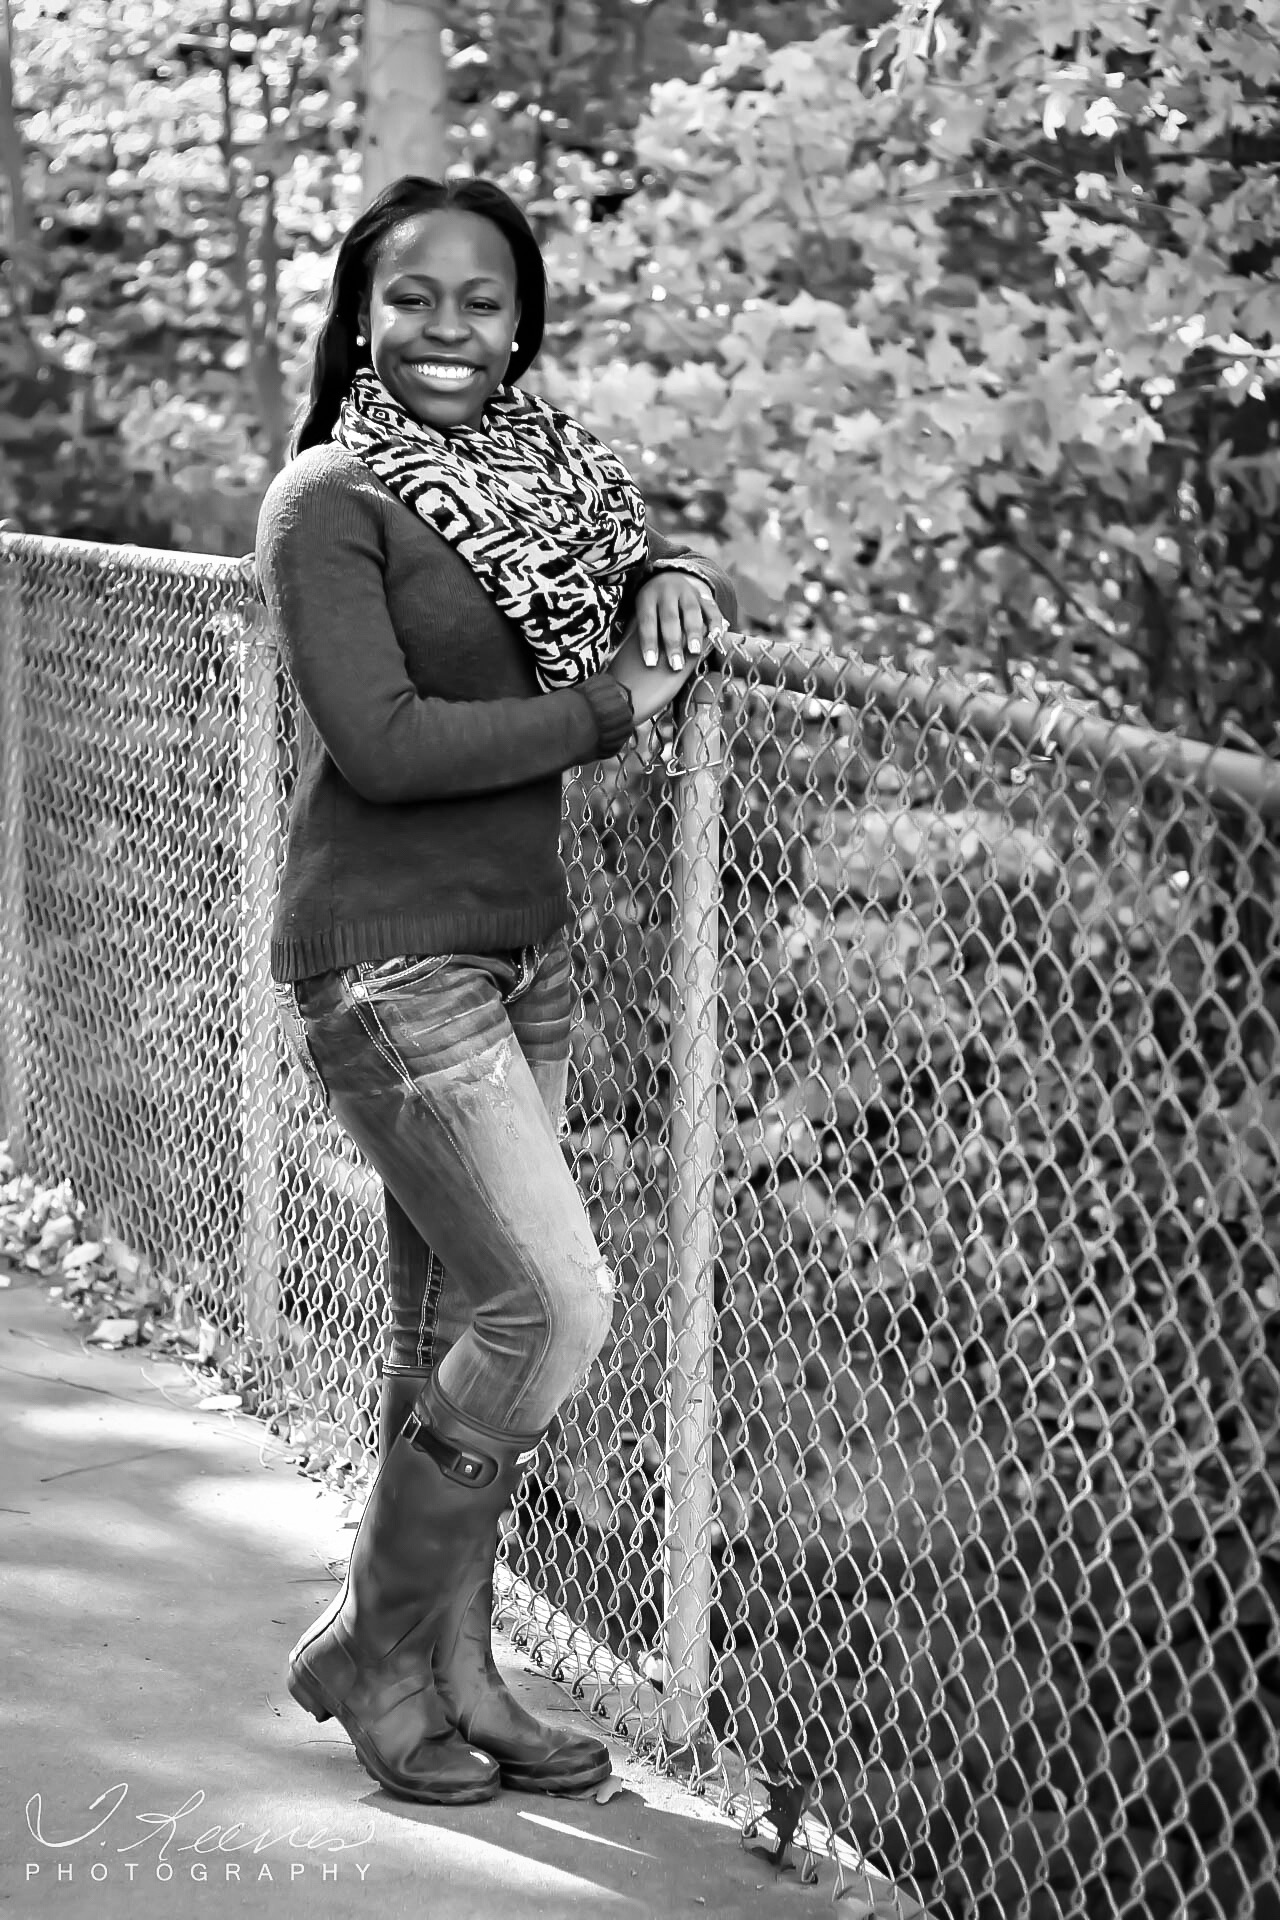 www.treevesphotography.org